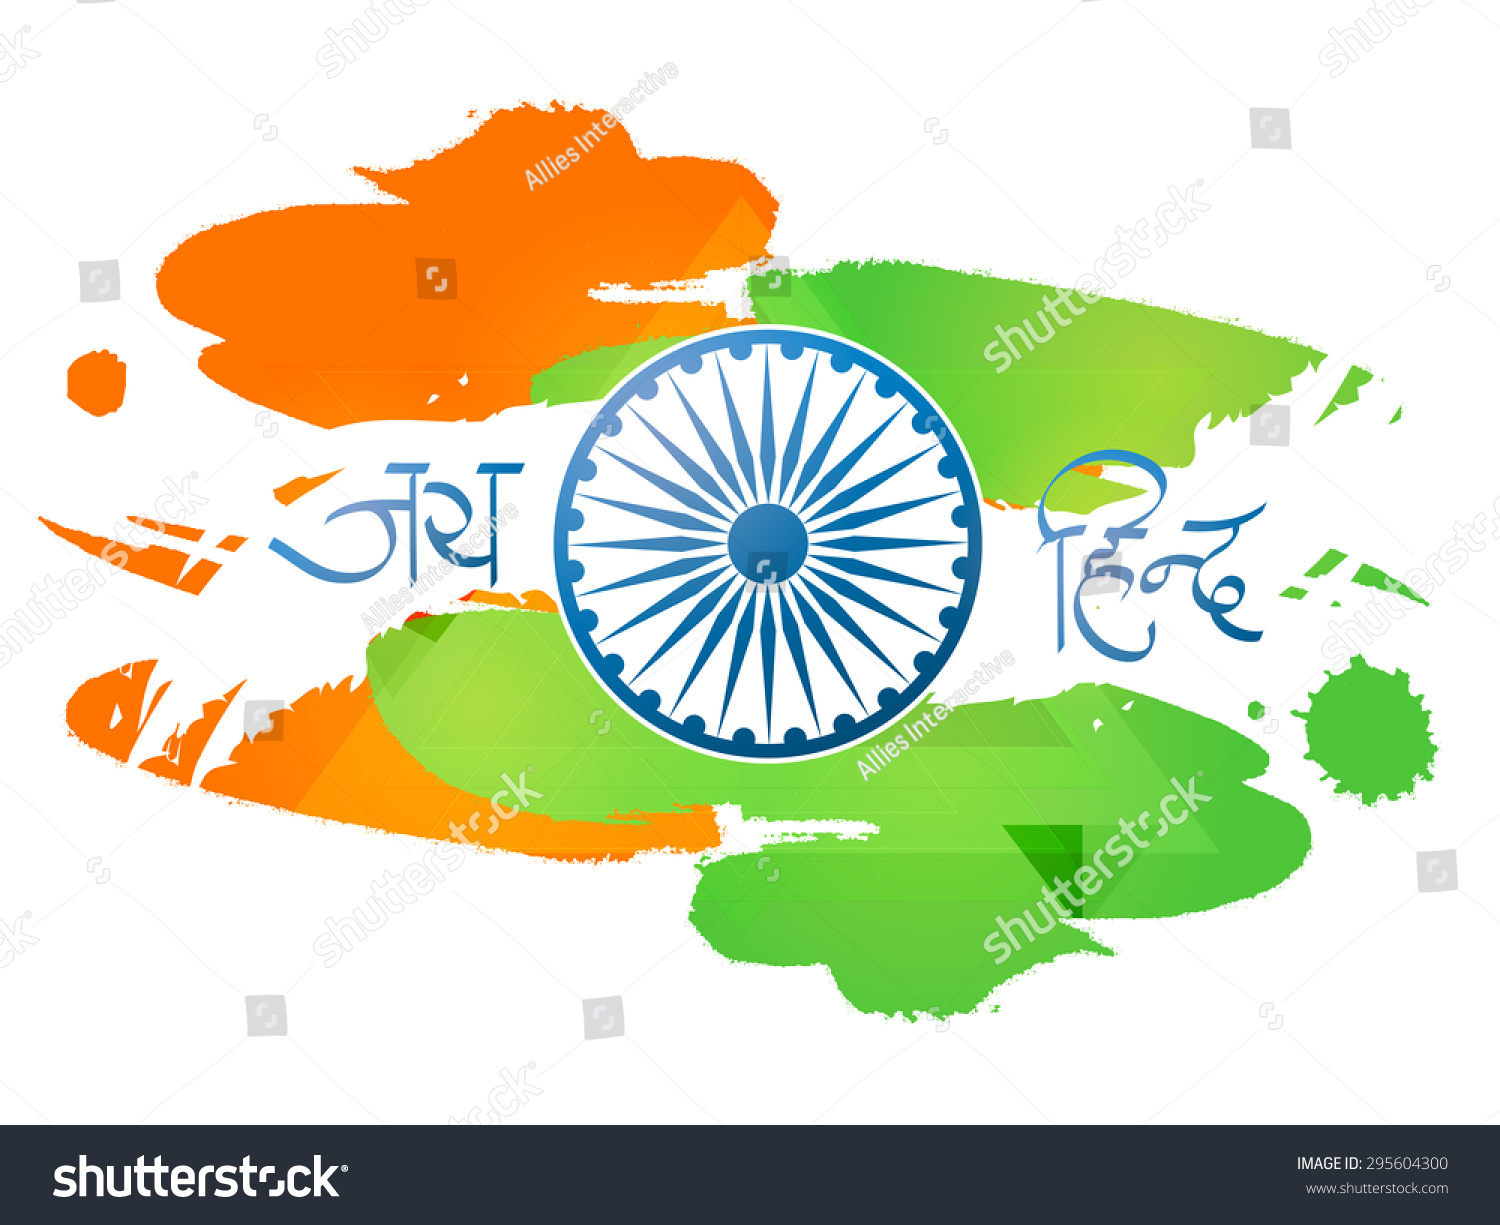 Colors website ashoka - Shiny National Flag Colors With Ashoka Wheel And Hindi Text Jai Hind Victory To India